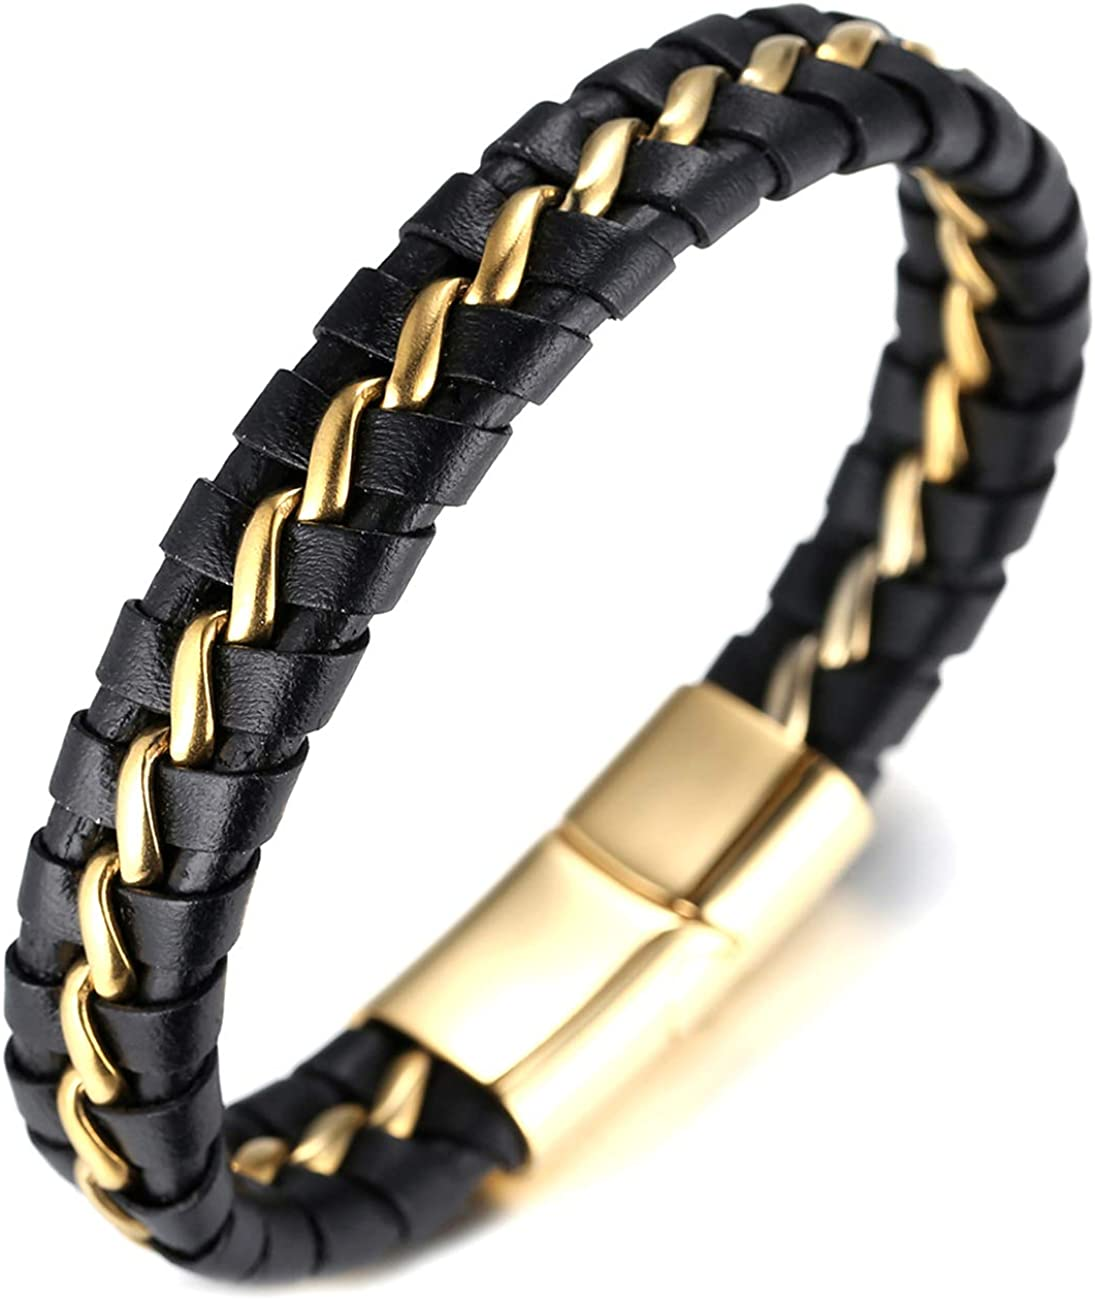 "Halukakah ● Solo ● Men's Genuine Leather Bracelet with Titanium Chain Gun Black/Moonlight Silver/Honor Gold 8.5""(21.5cm)-9""(23cm) with FREE Giftbox"